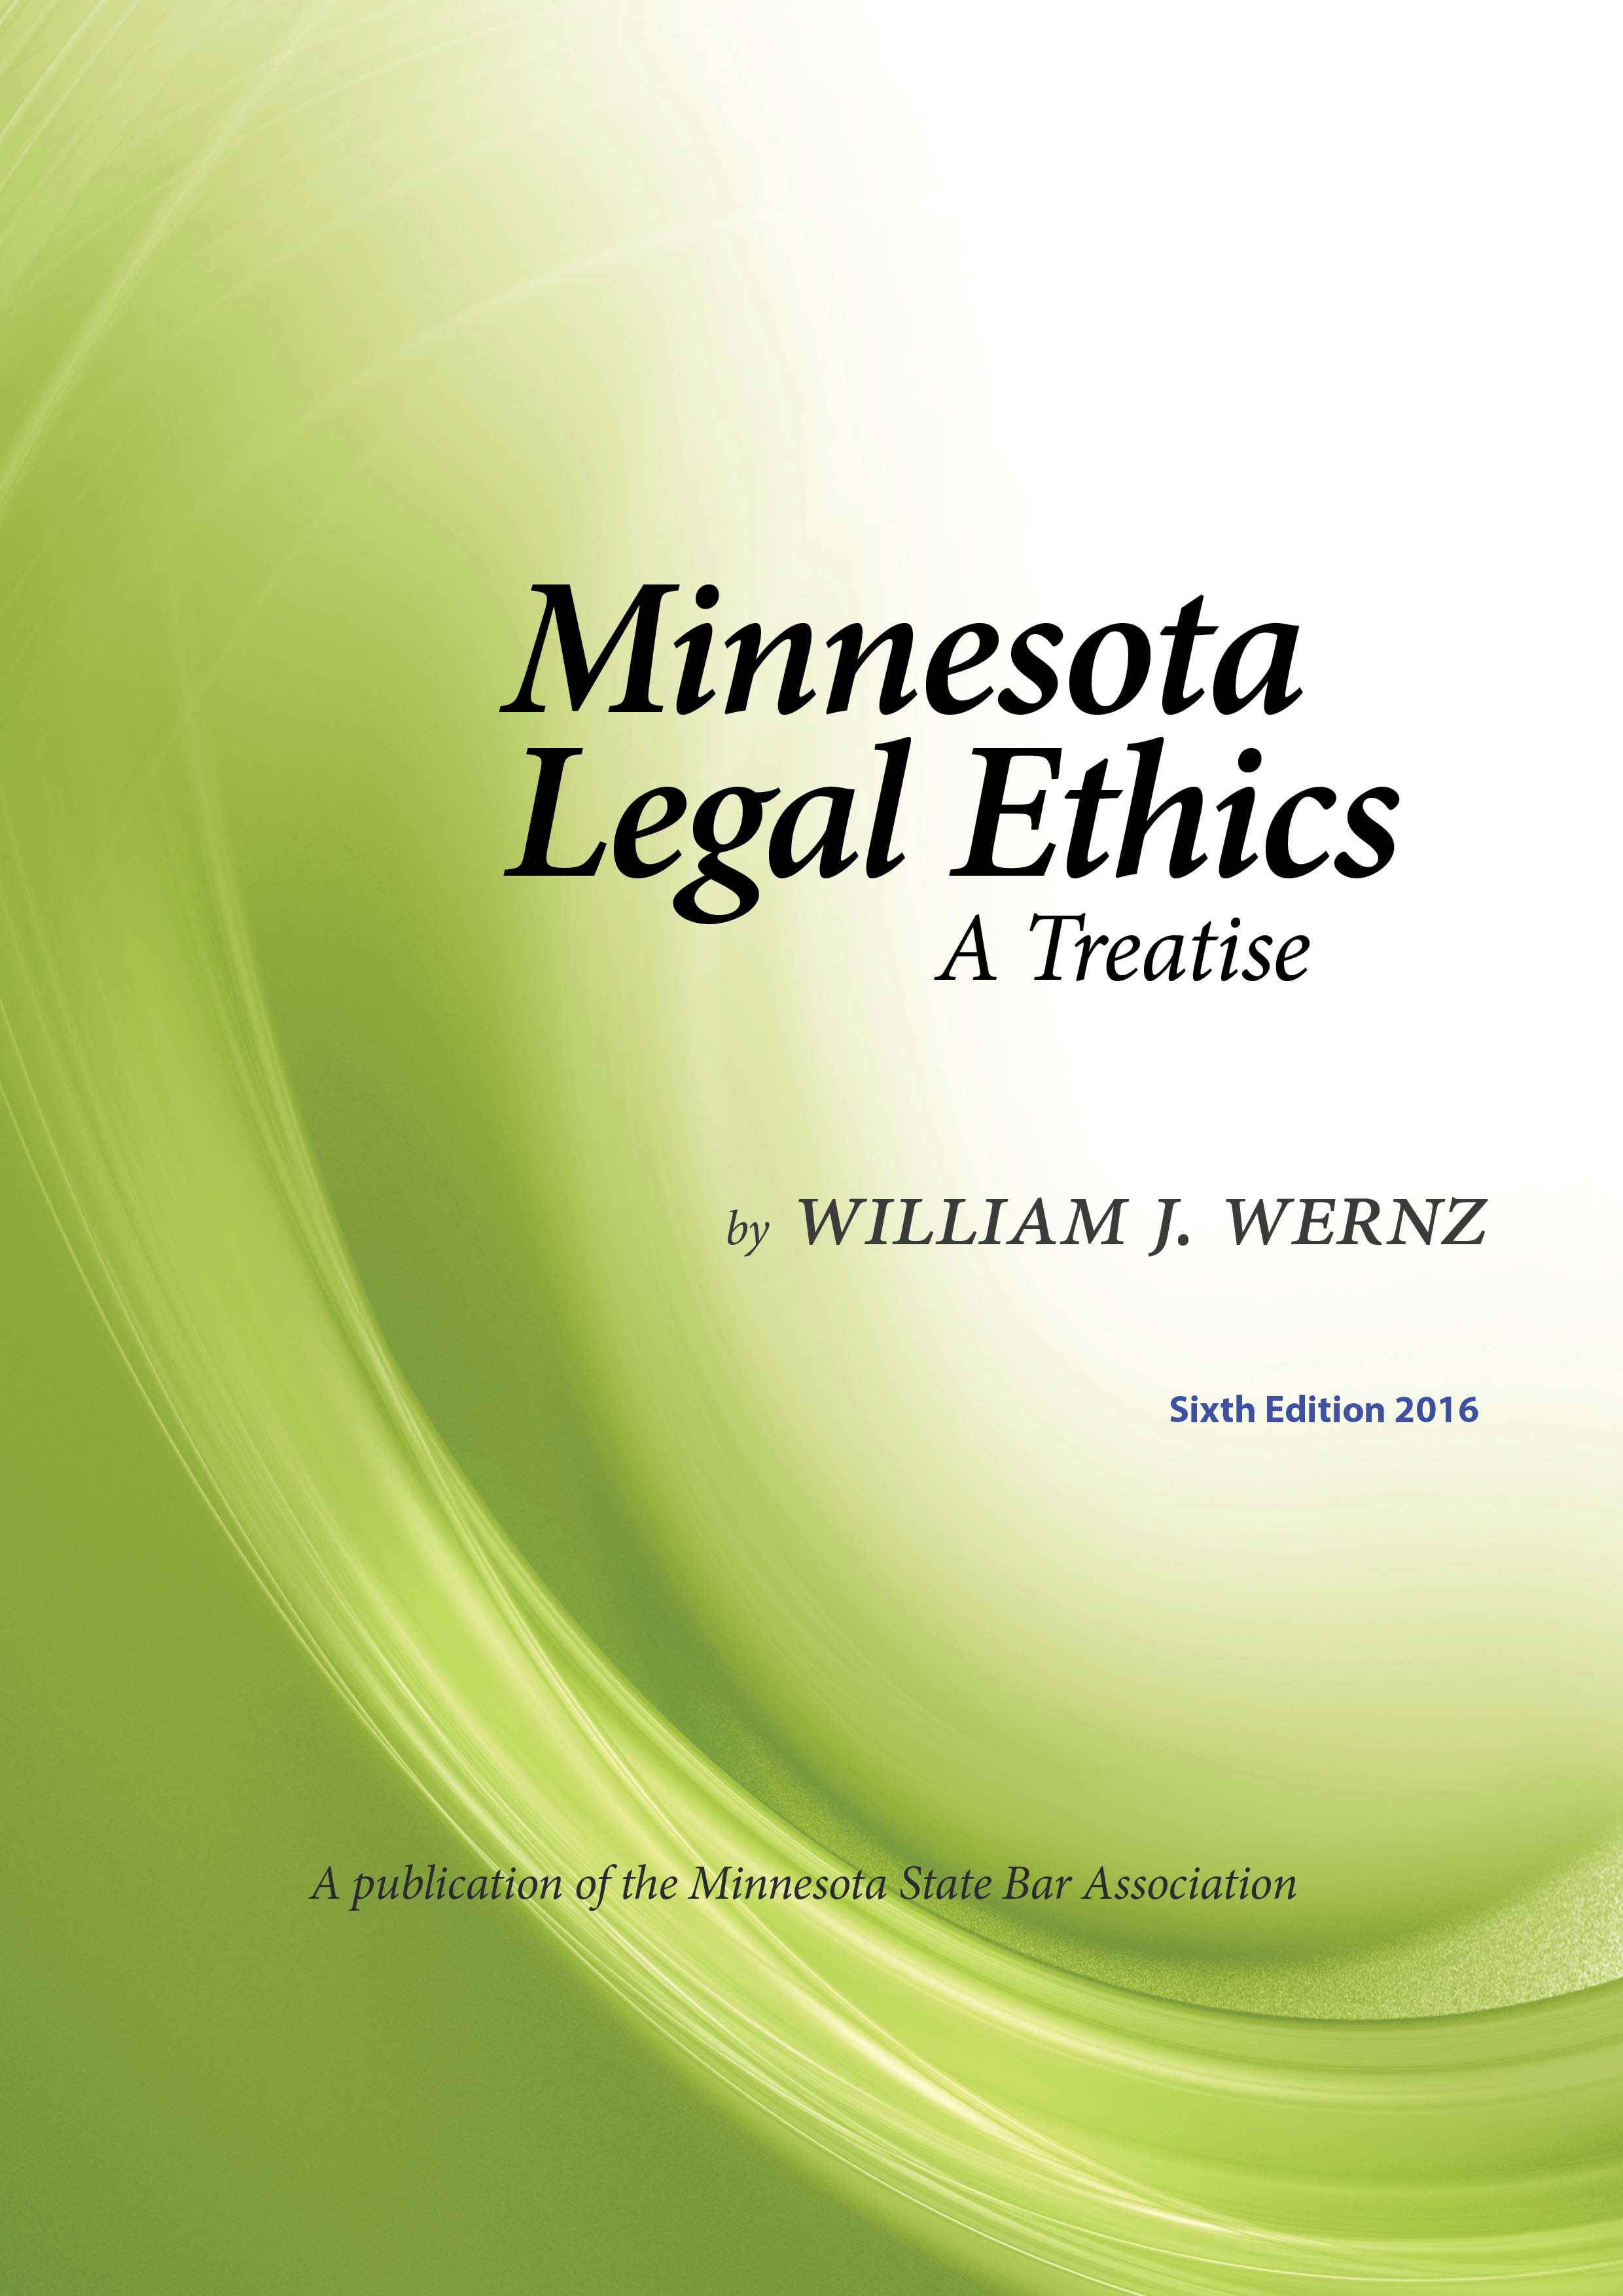 Minnesota Legal Ethics 6th ED cover